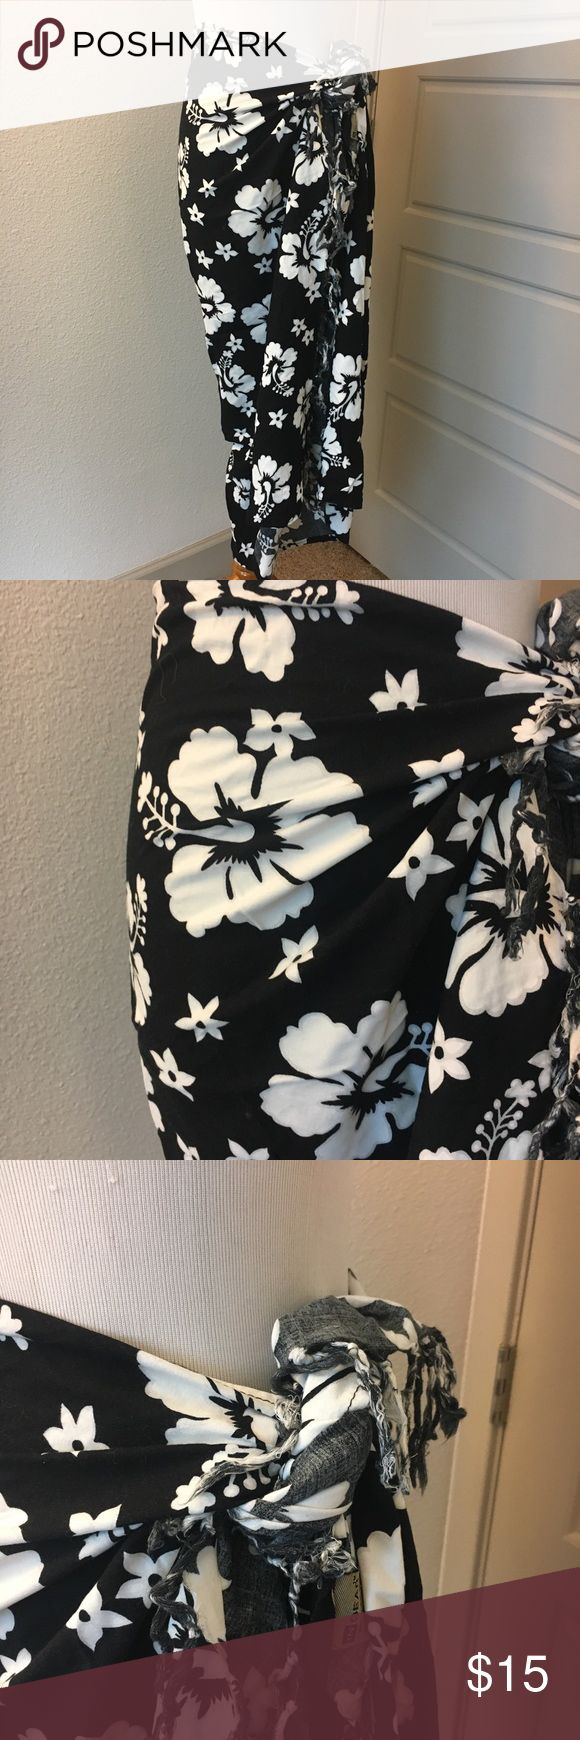 Hibiscus Sarong Skirt in Black and White Dillard's Super cute Sarong skirt originally purchased from Dillard's department store. In perfect condition, only worn a handful of times. Great for your next vacation or even a trip to the pool! Has fringed edges. Length is determined by the knot that you tie around your waist. Size is comparable to a small (sizes 4-10 could fit) Feel free to ask questions, I'm happy to help! In Gear Swim Sarongs